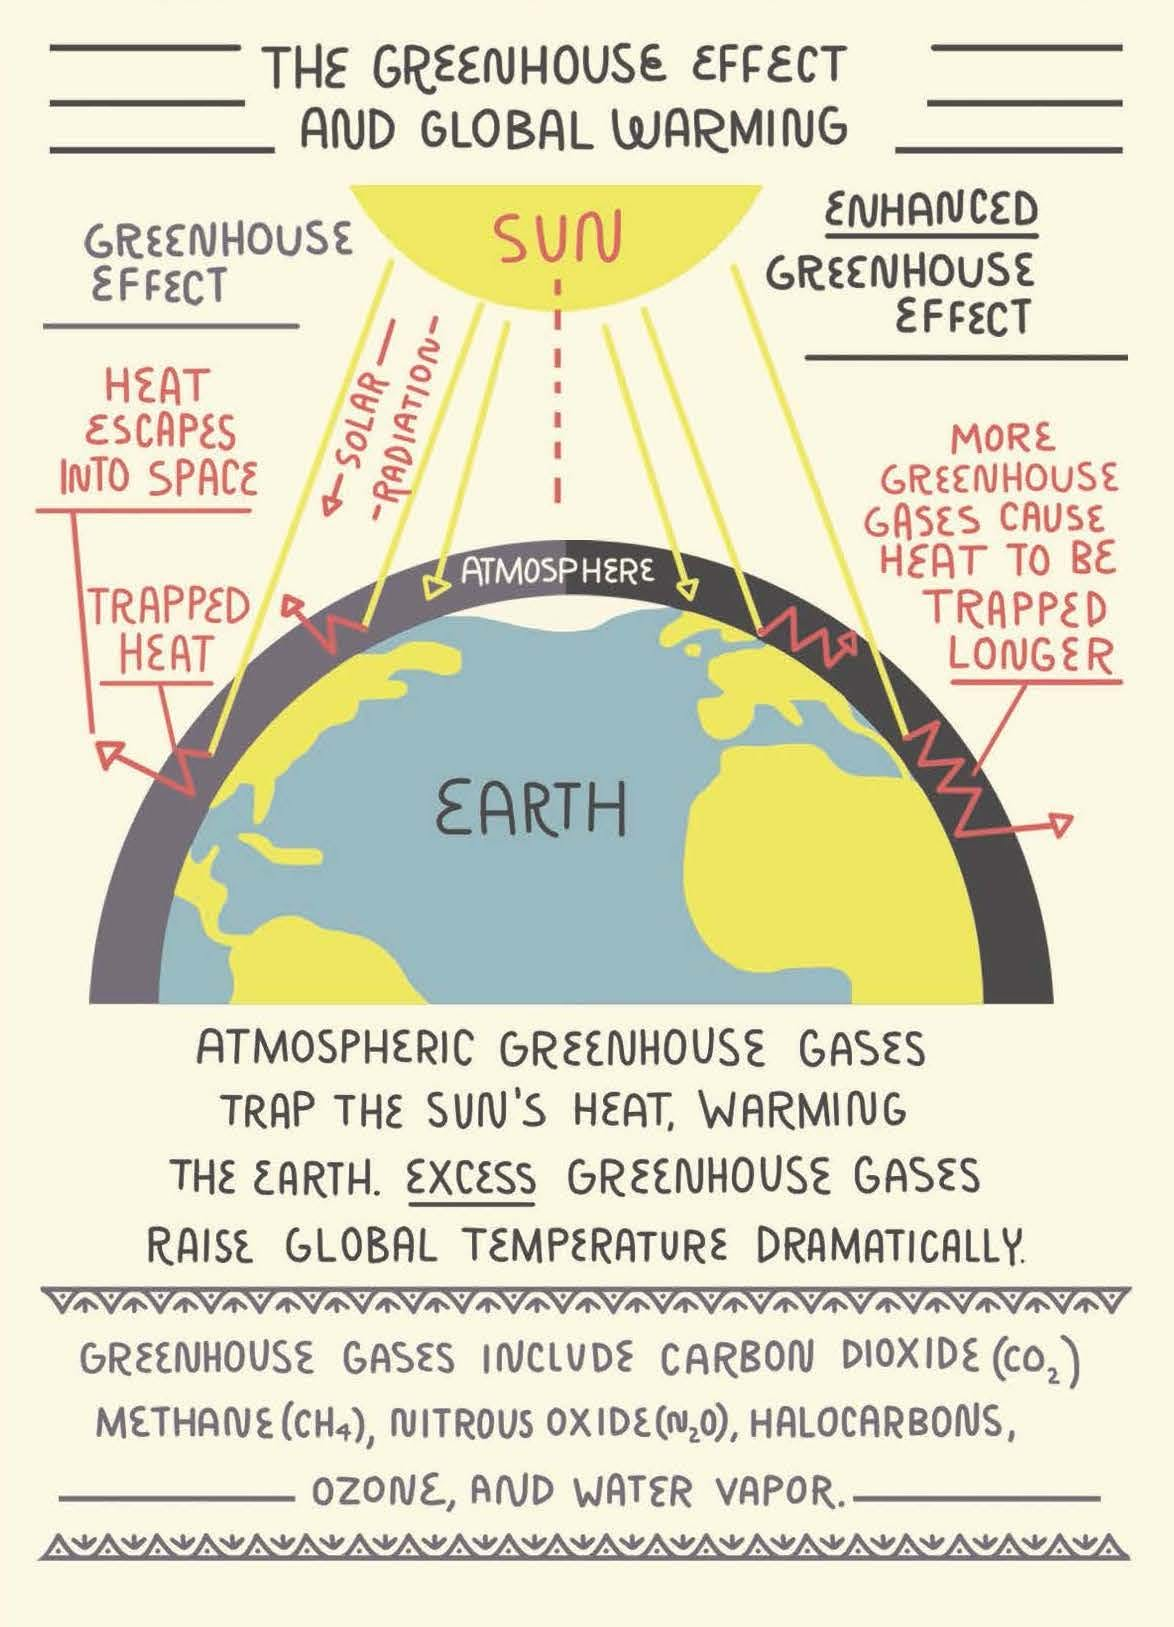 What Is The Greenhouse Effect And How Does It Cause Global